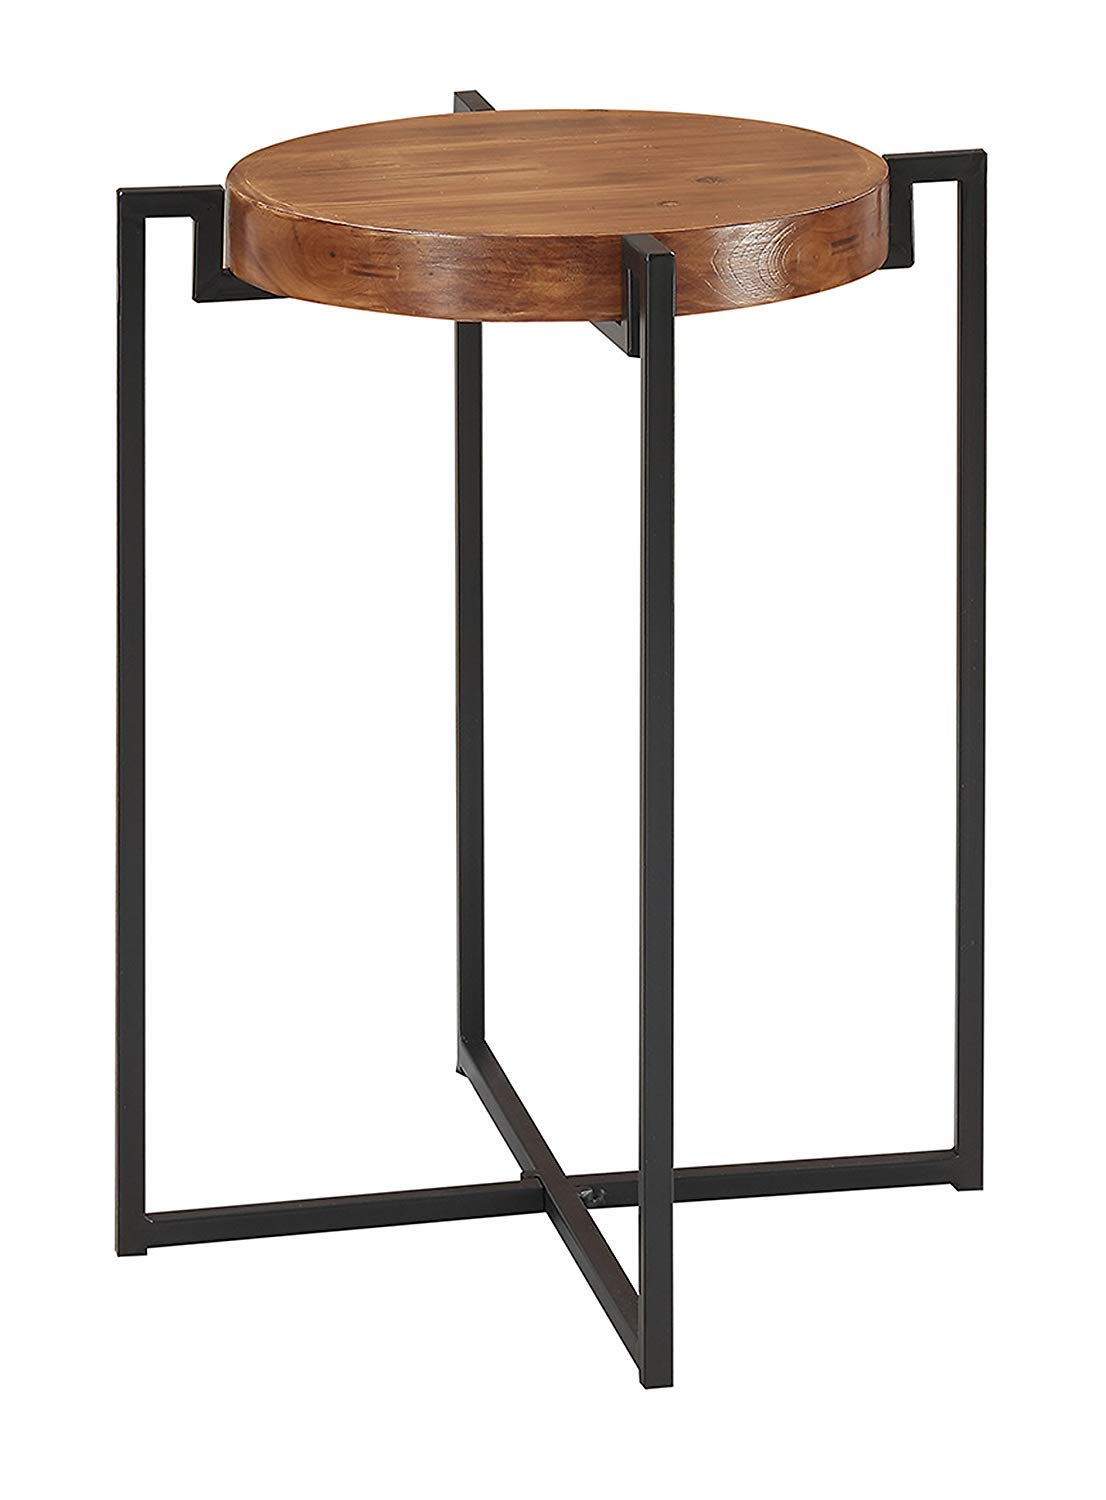 Convenience Concepts 227265 Nordic Round Tray End Table, Dark Walnut/Black by Convenience Concepts